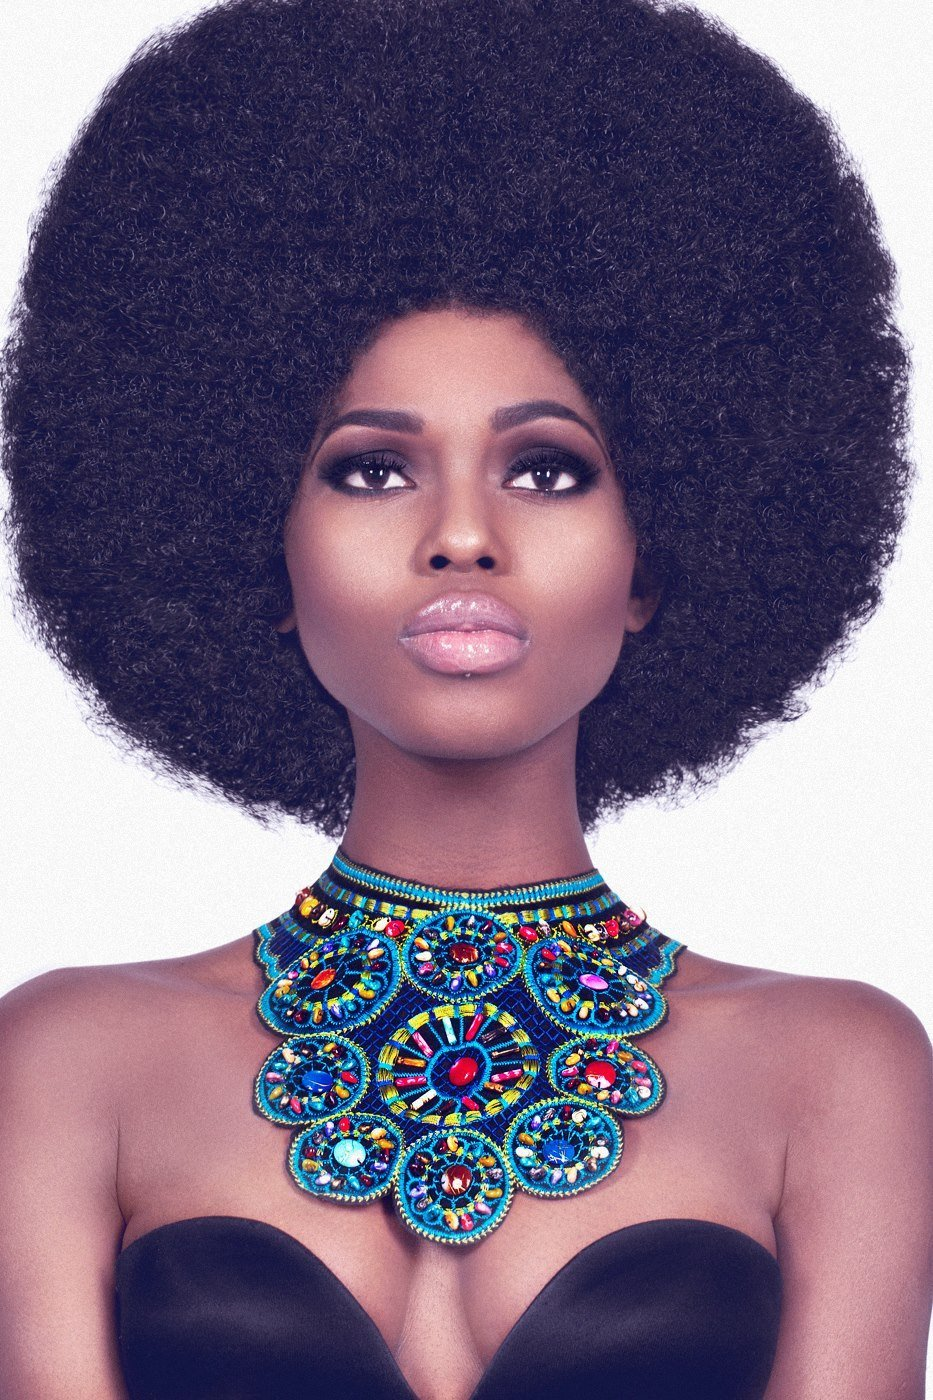 The Best My Black Is Beautiful Aafroscandic Beauty Culture Life Pictures